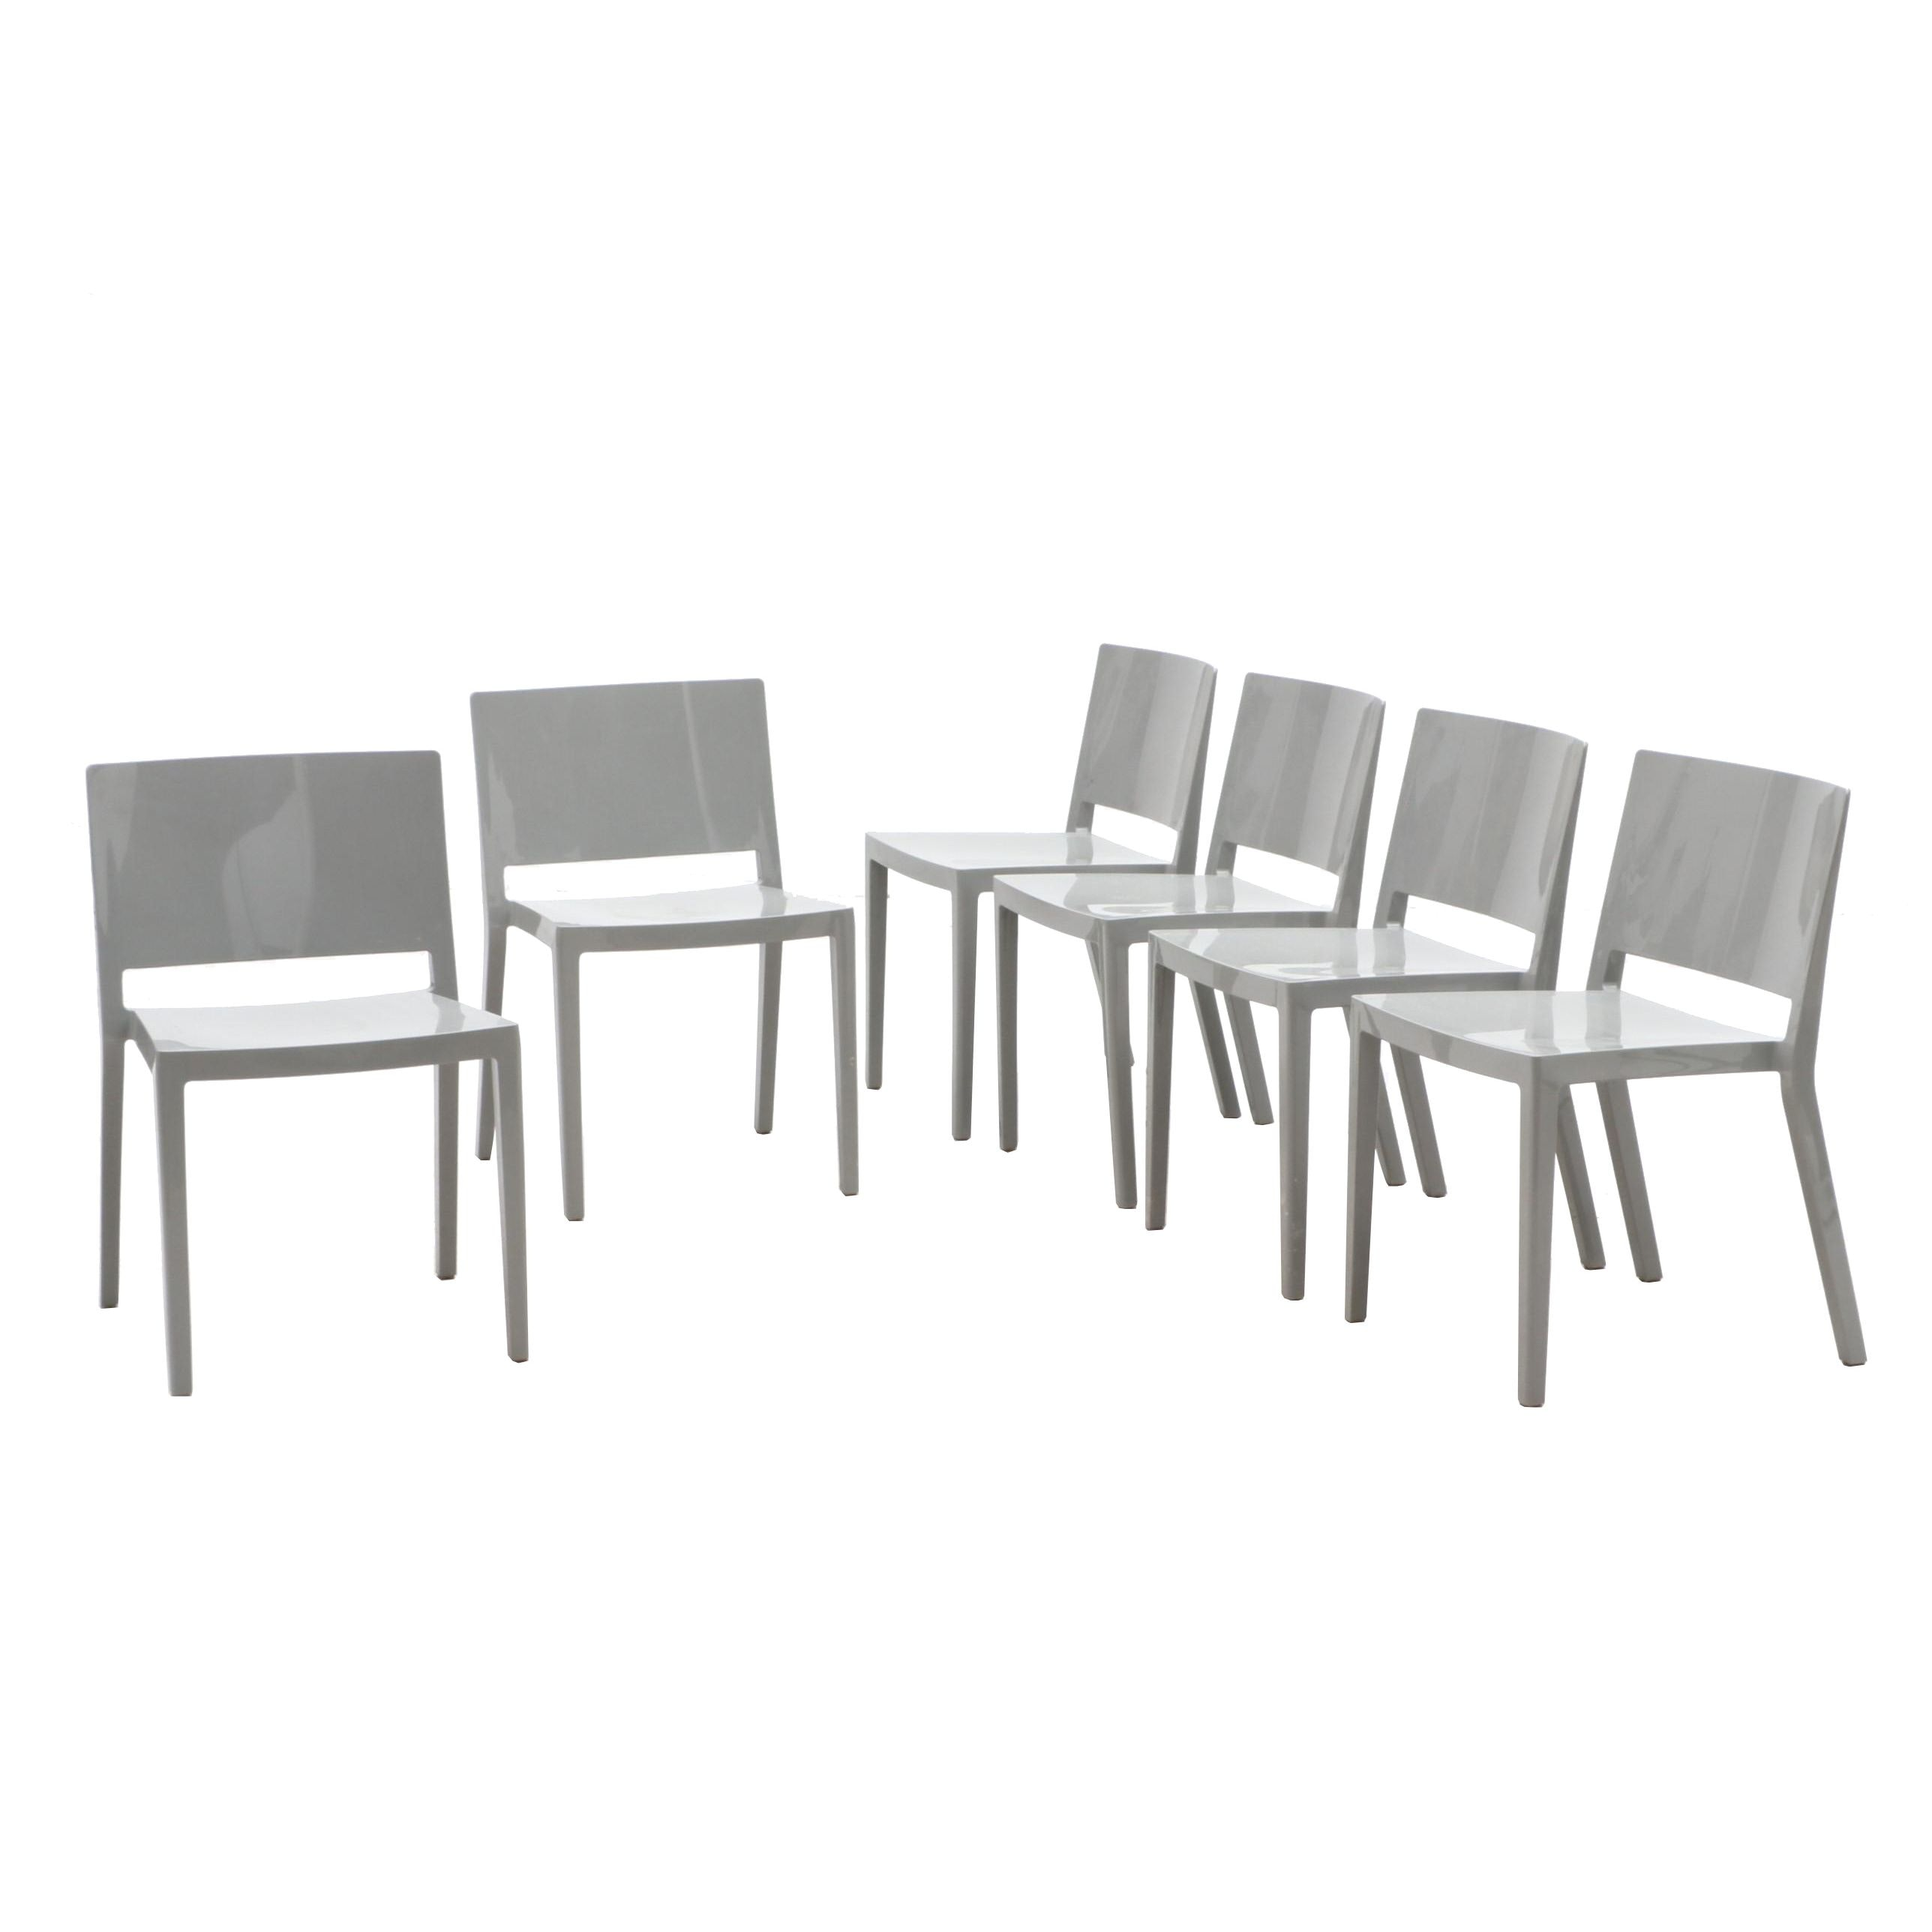 Modernist Molded Plastic Side Chairs in the Stye of Lissoni